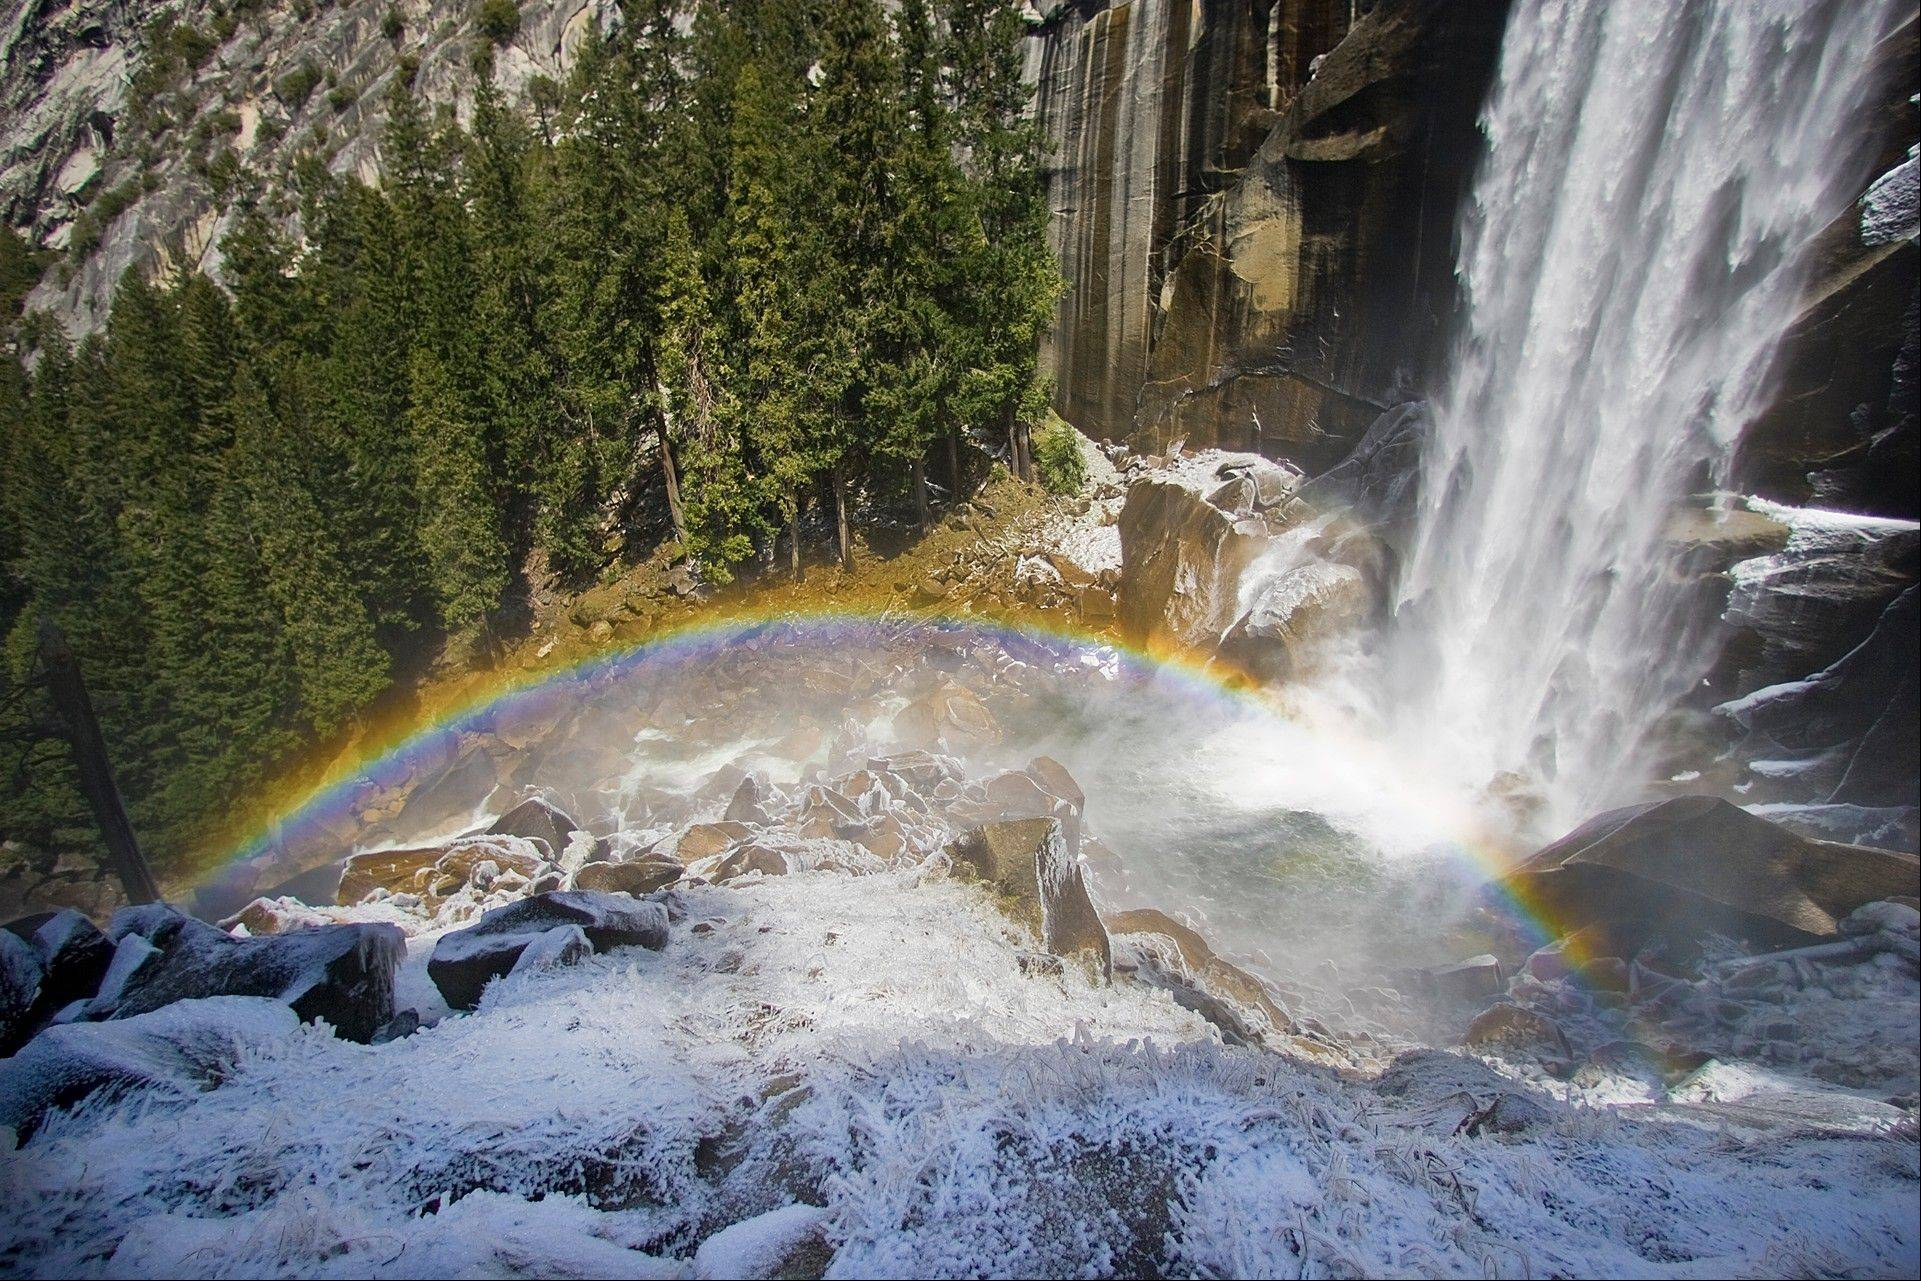 Ice forms around a rainbow at the base of Vernal Falls on the Mist Trail in Yosemite National Park in a photo from April 2009. Search and rescue rangers at Yosemite National Park were scouring an area below the popular waterfall after witnesses reported seeing at least three people swept over the falls.